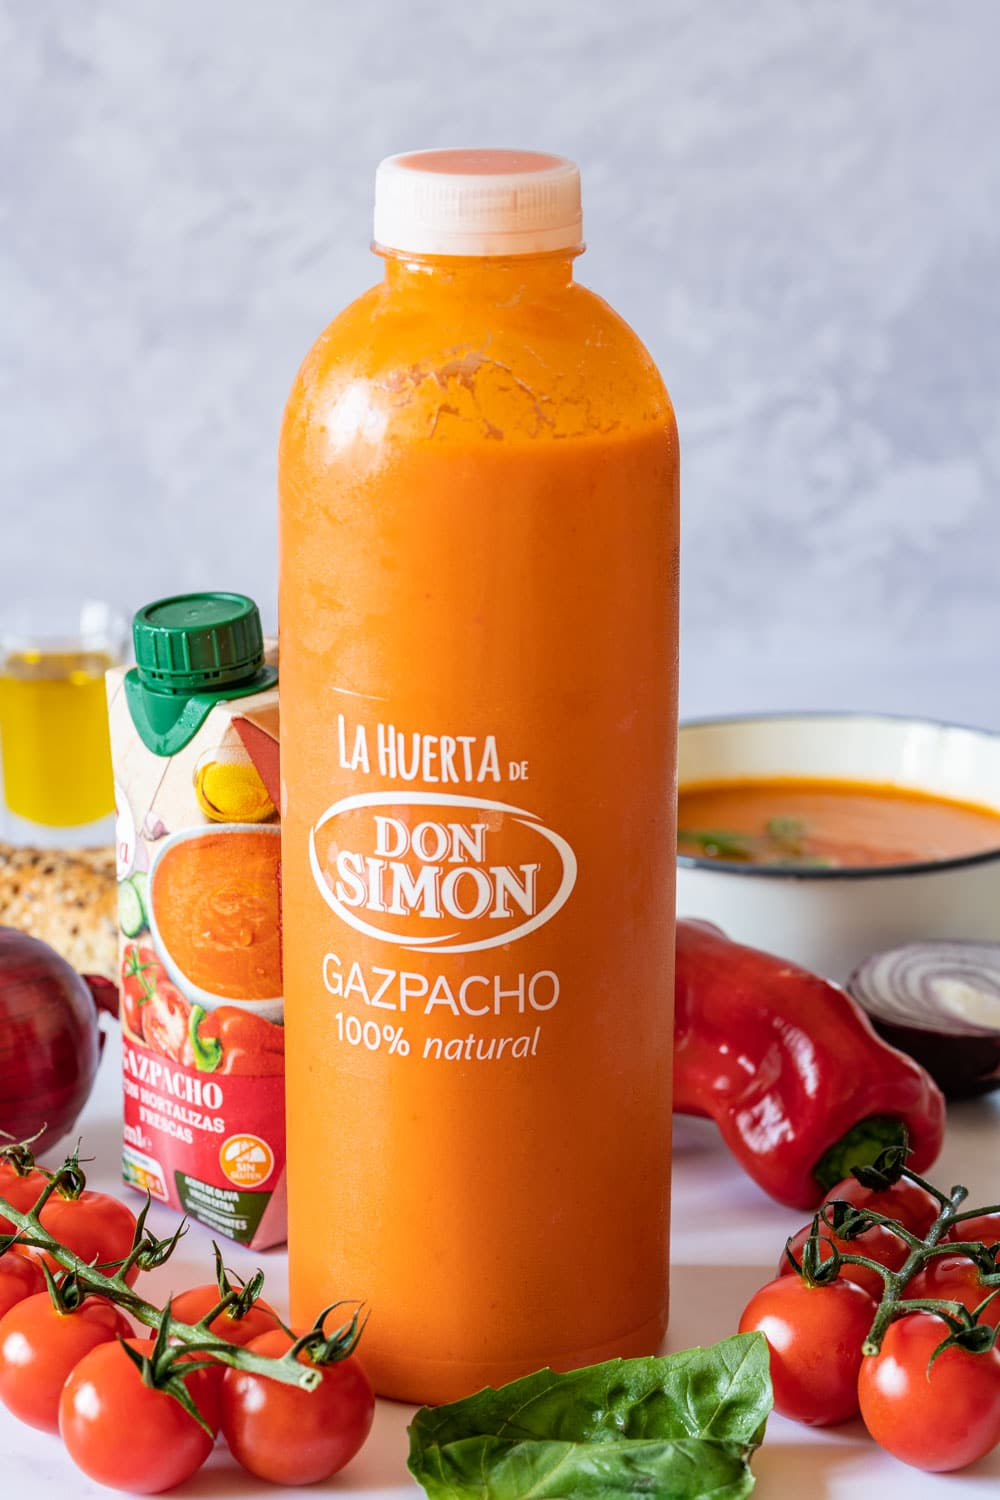 Bottle of gazpacho with fresh tomatoes